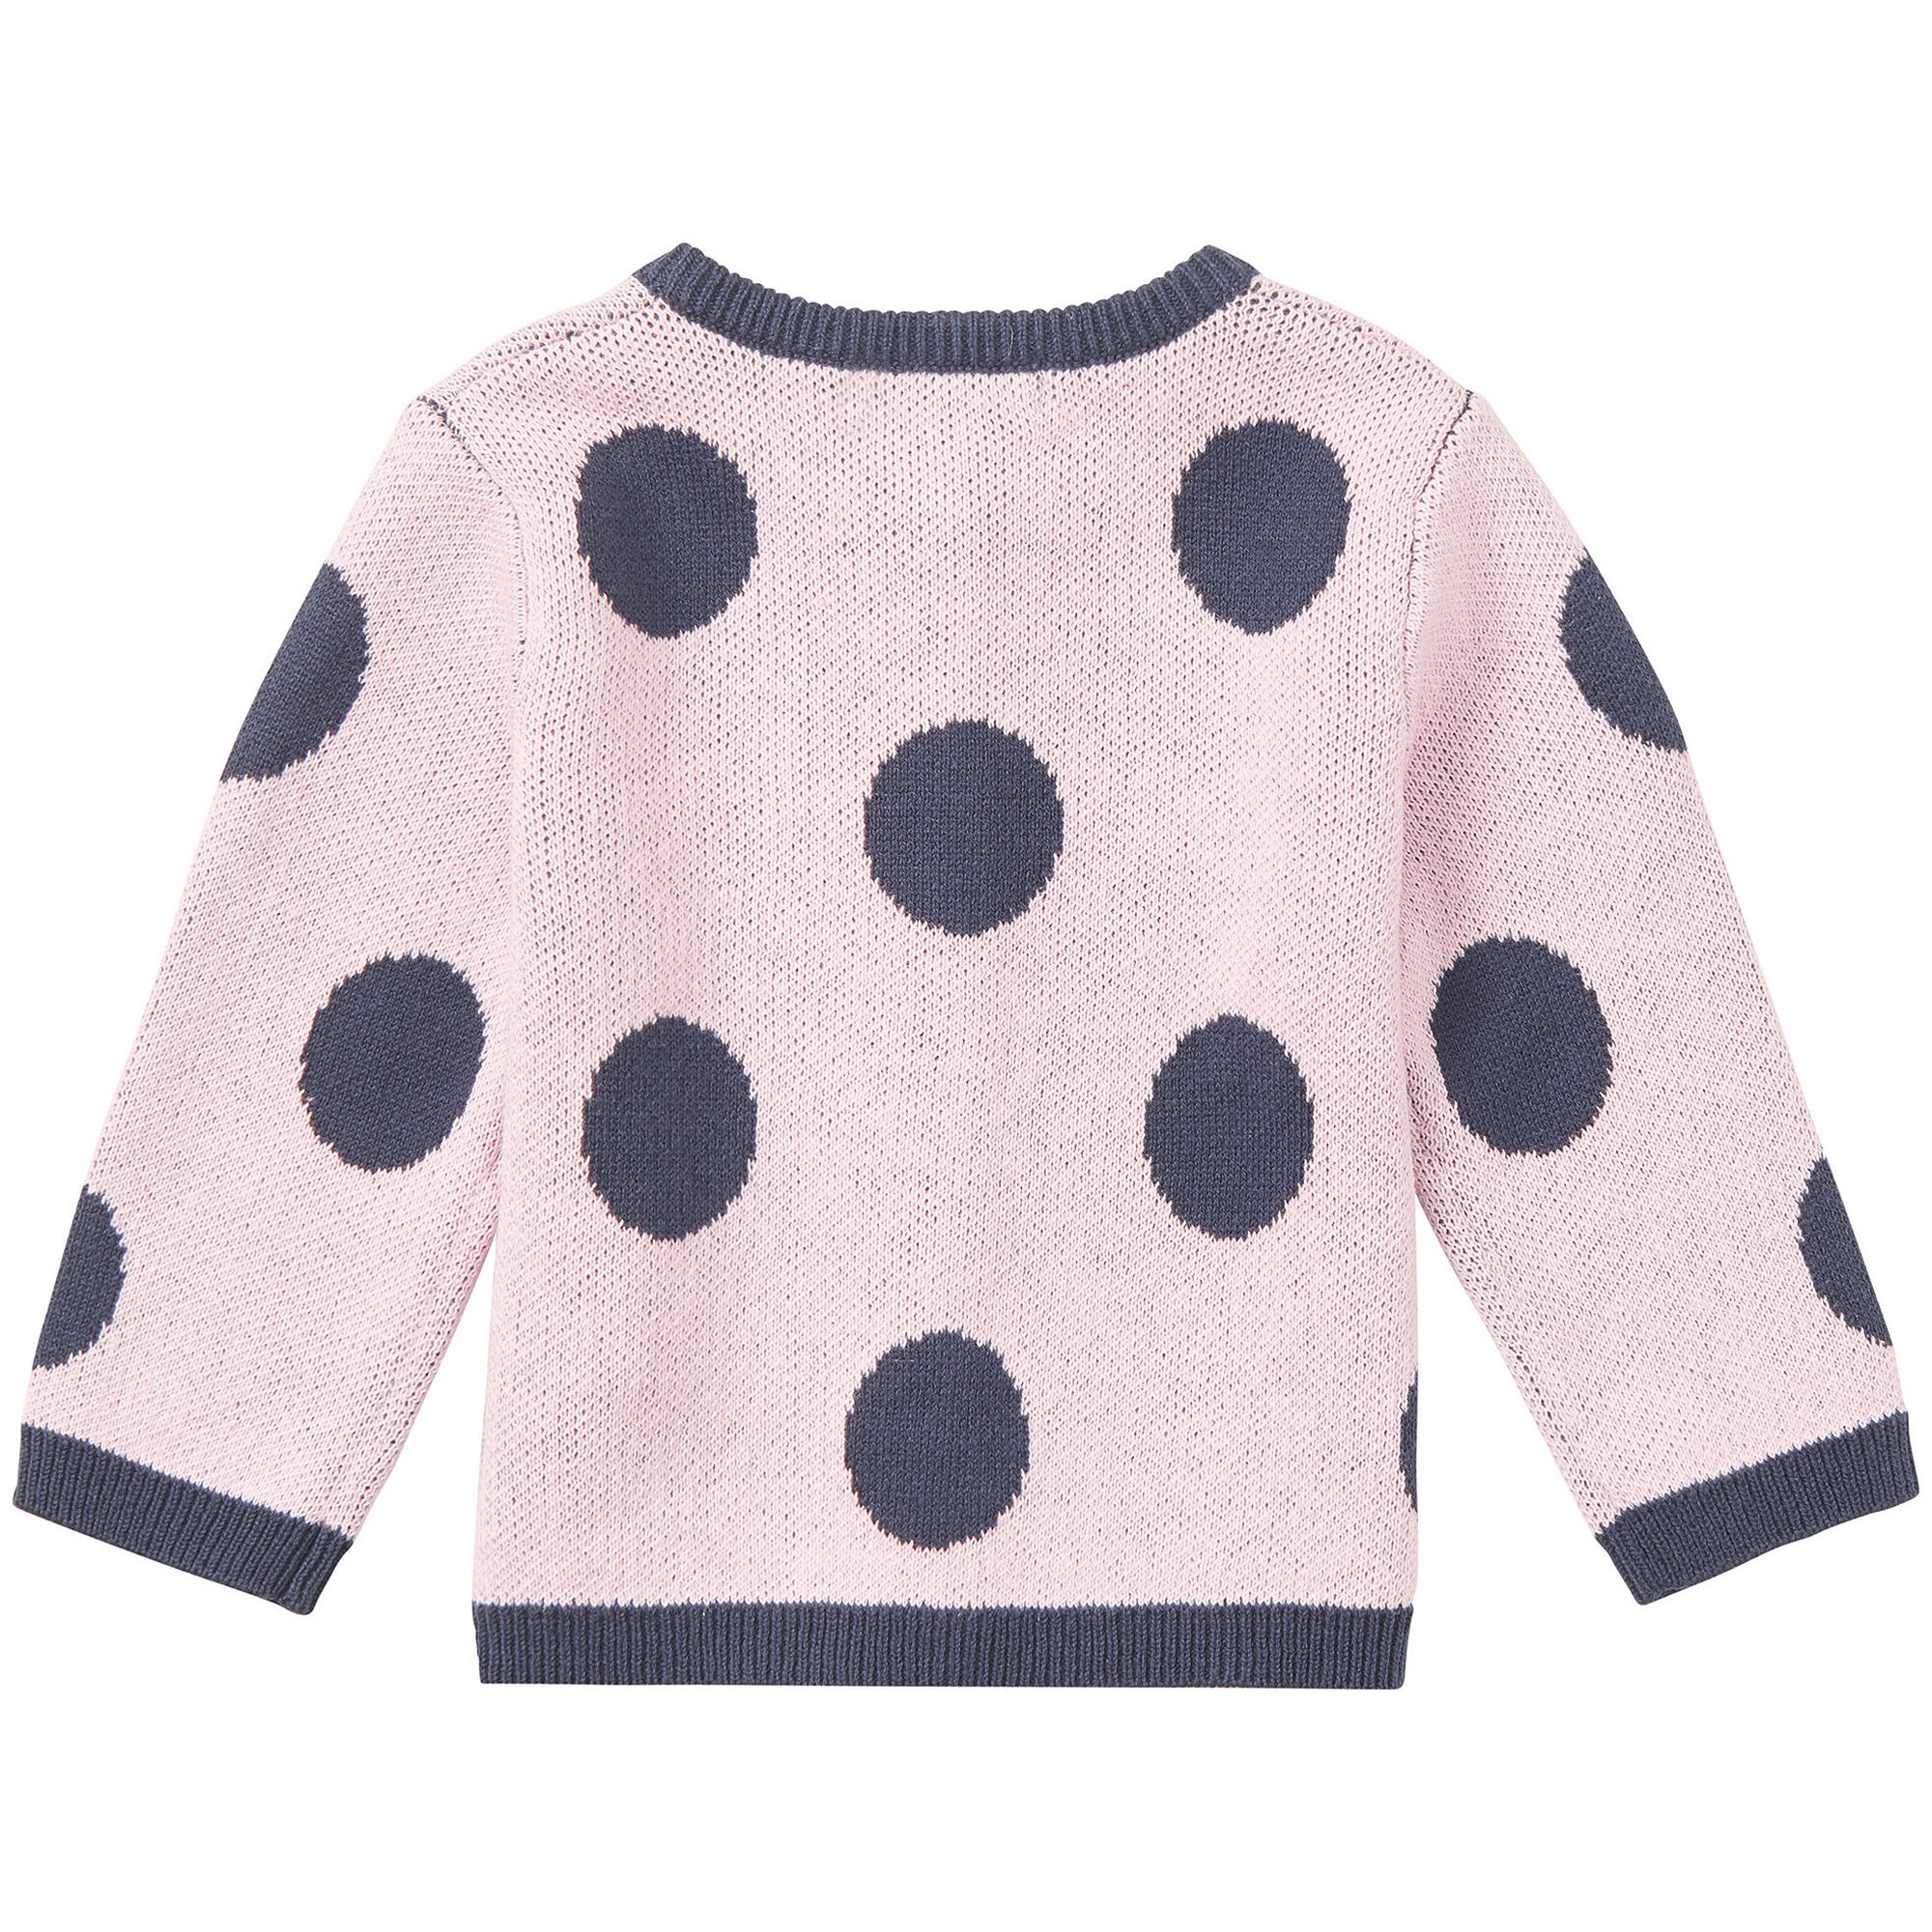 noppies-strickjacke-gifford, 34.99 EUR @ babywalz-de